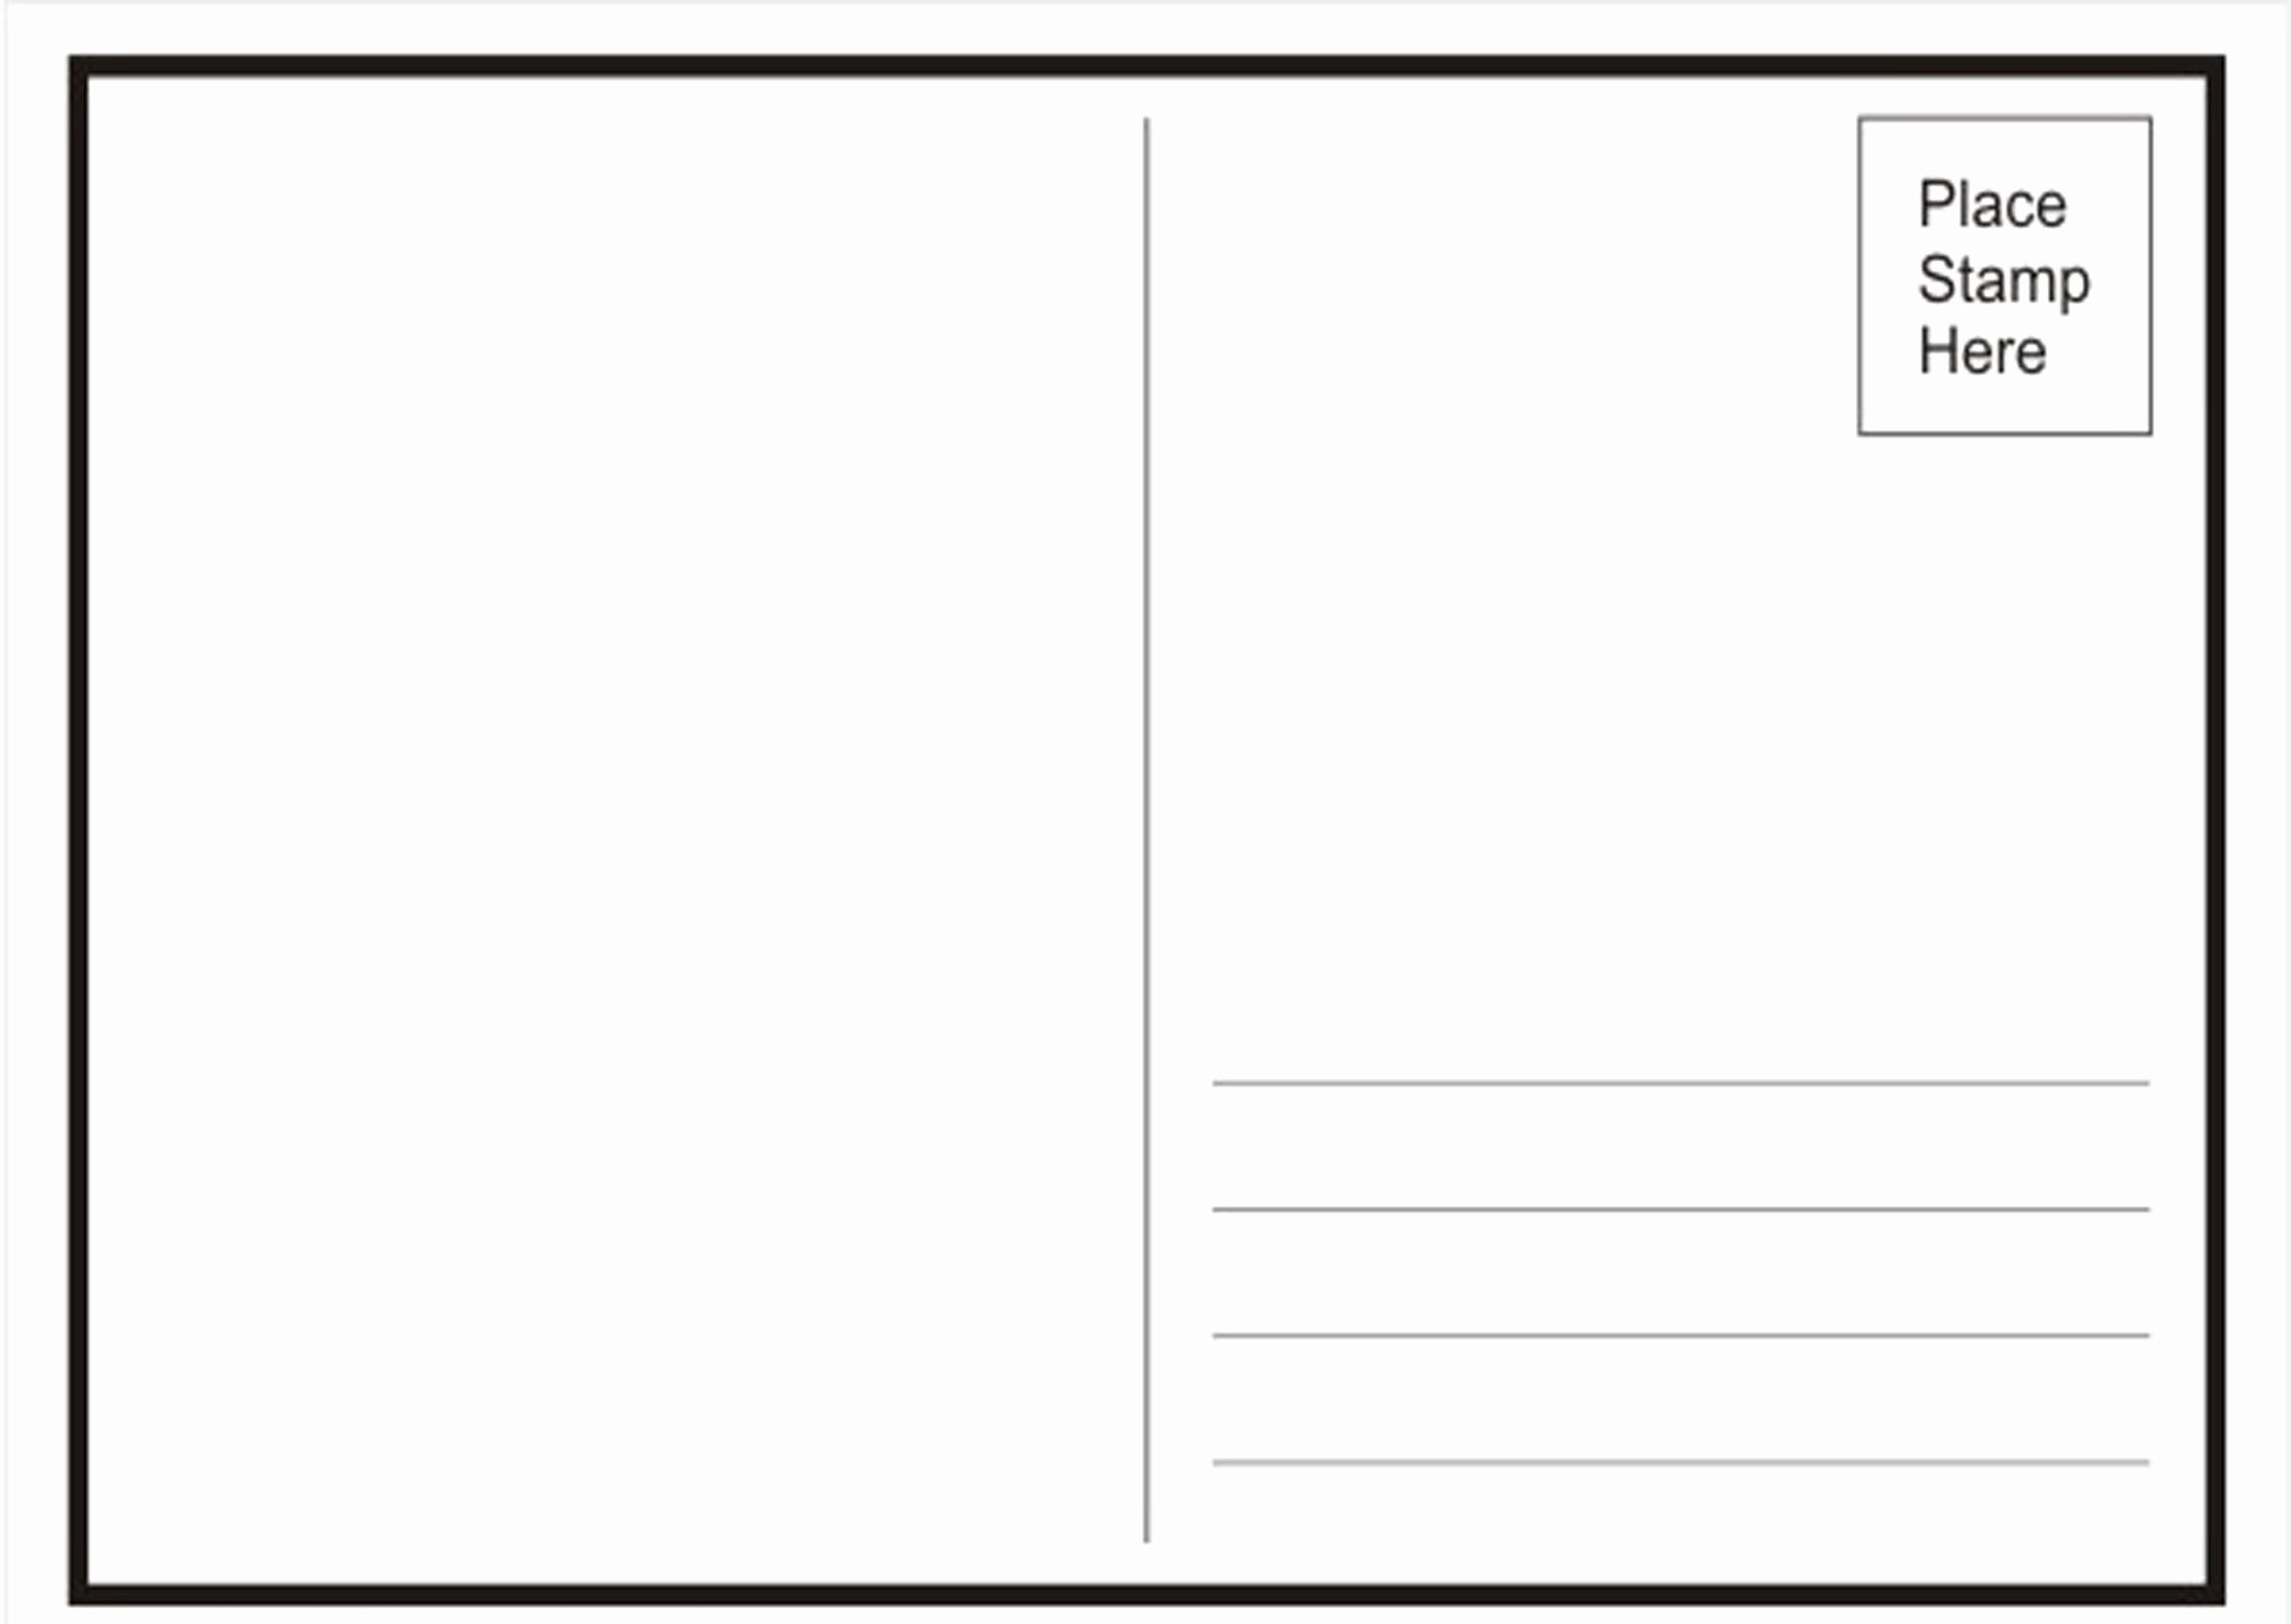 Blank Postcard Template Unique Postcard Concepts